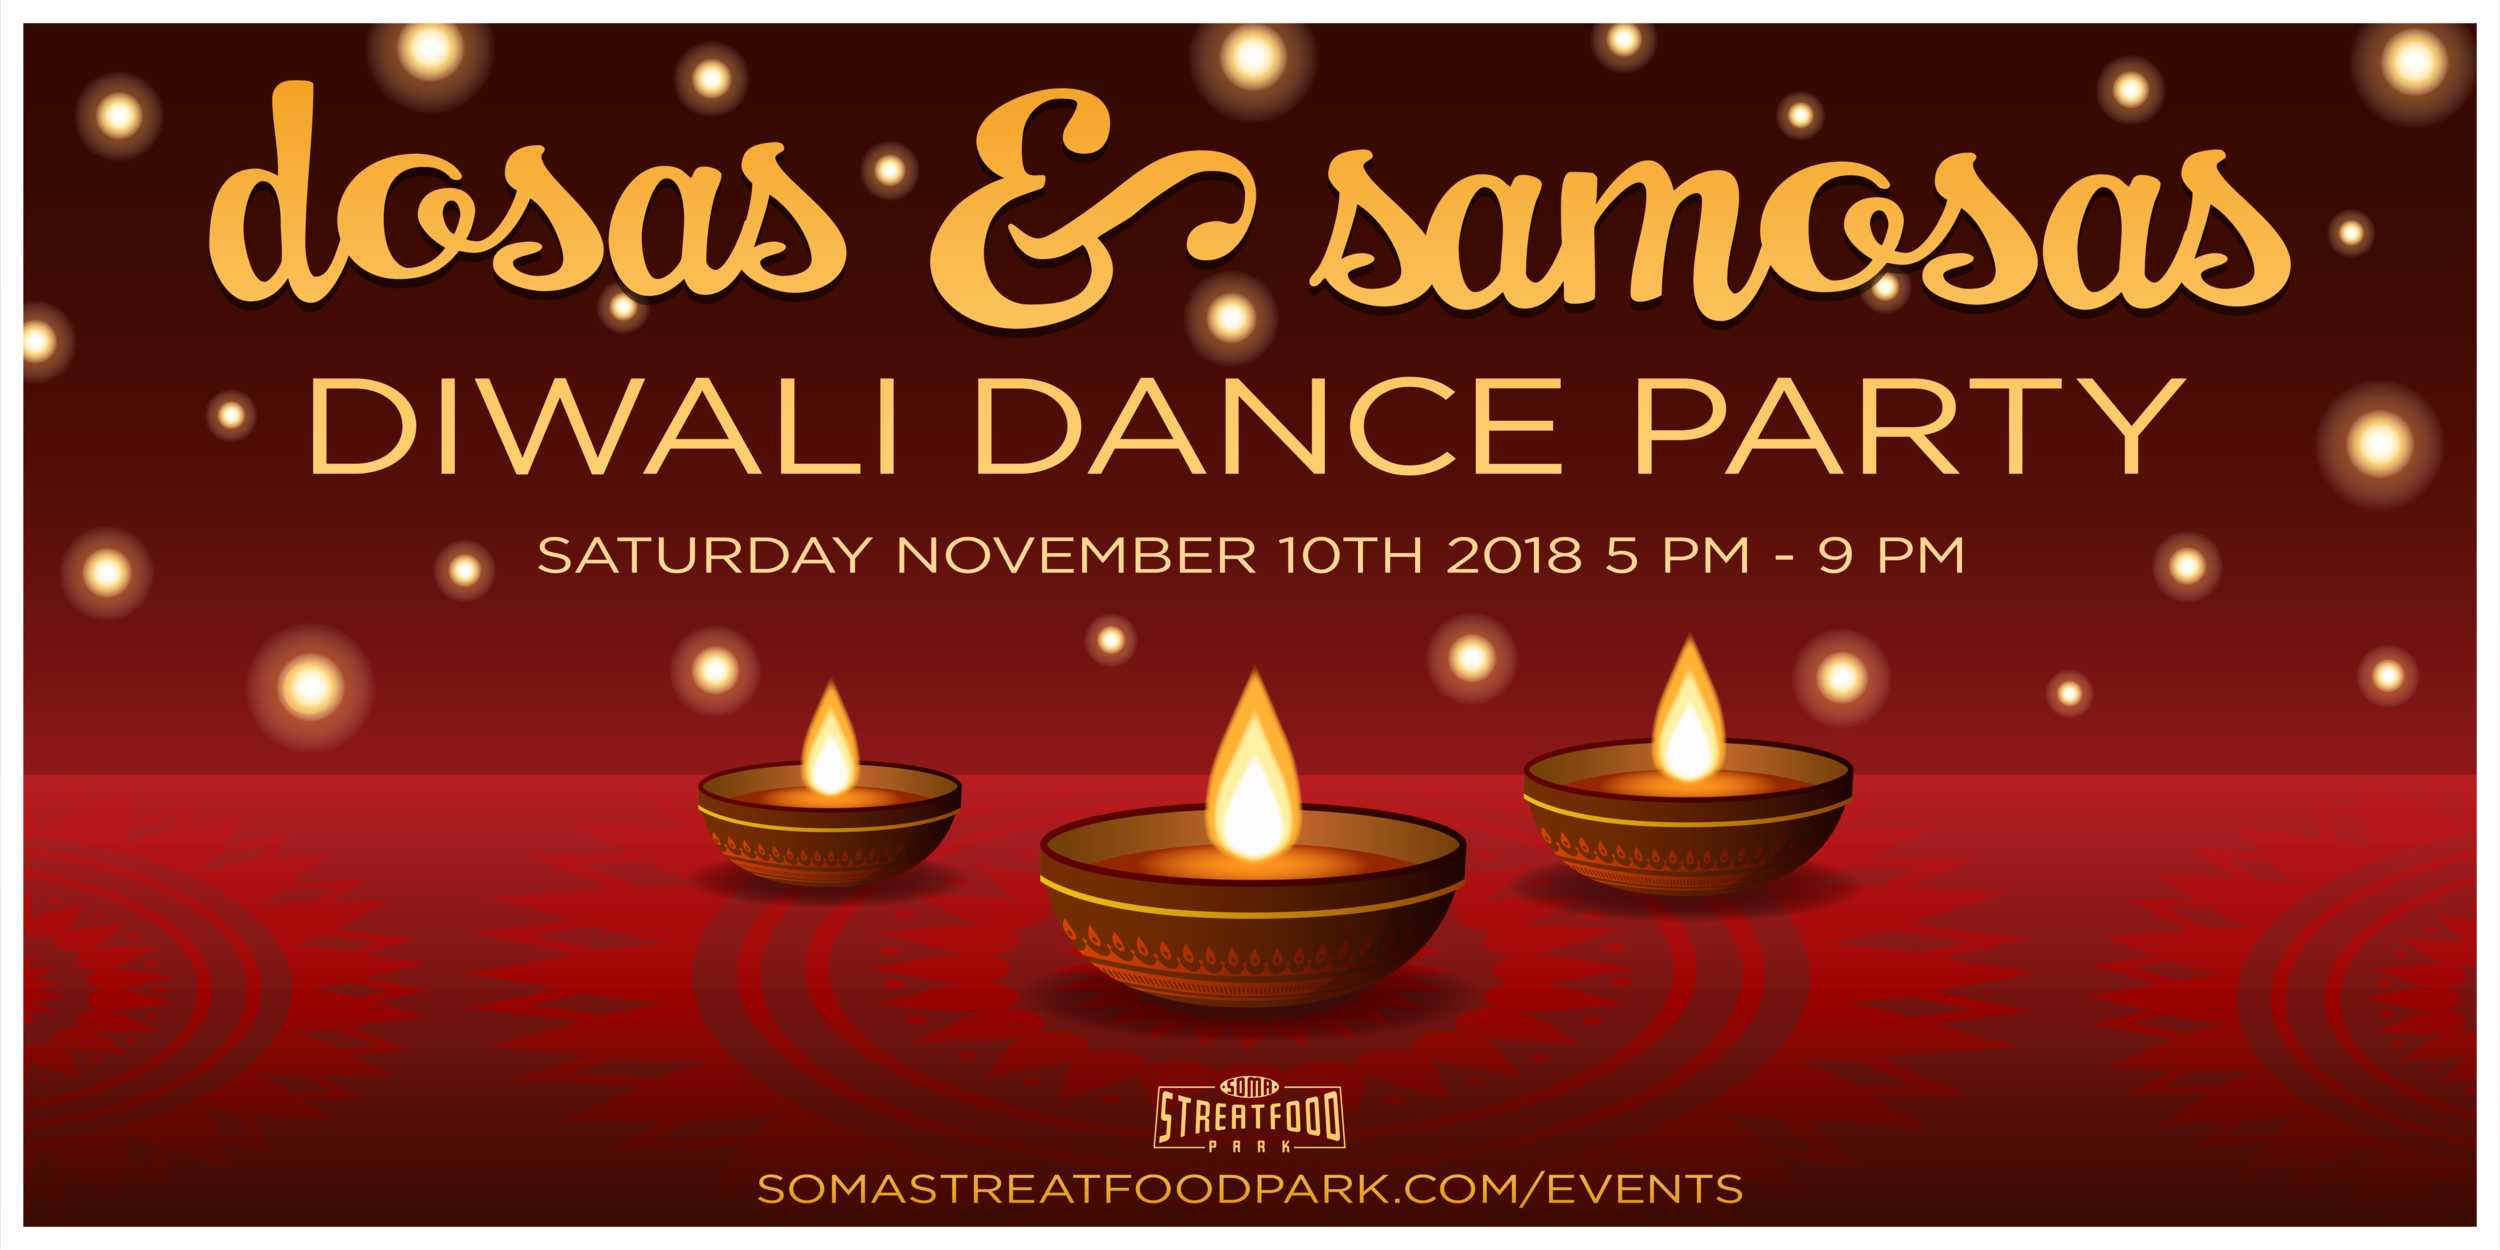 diwali-eventbrite-oct9-a-01.png